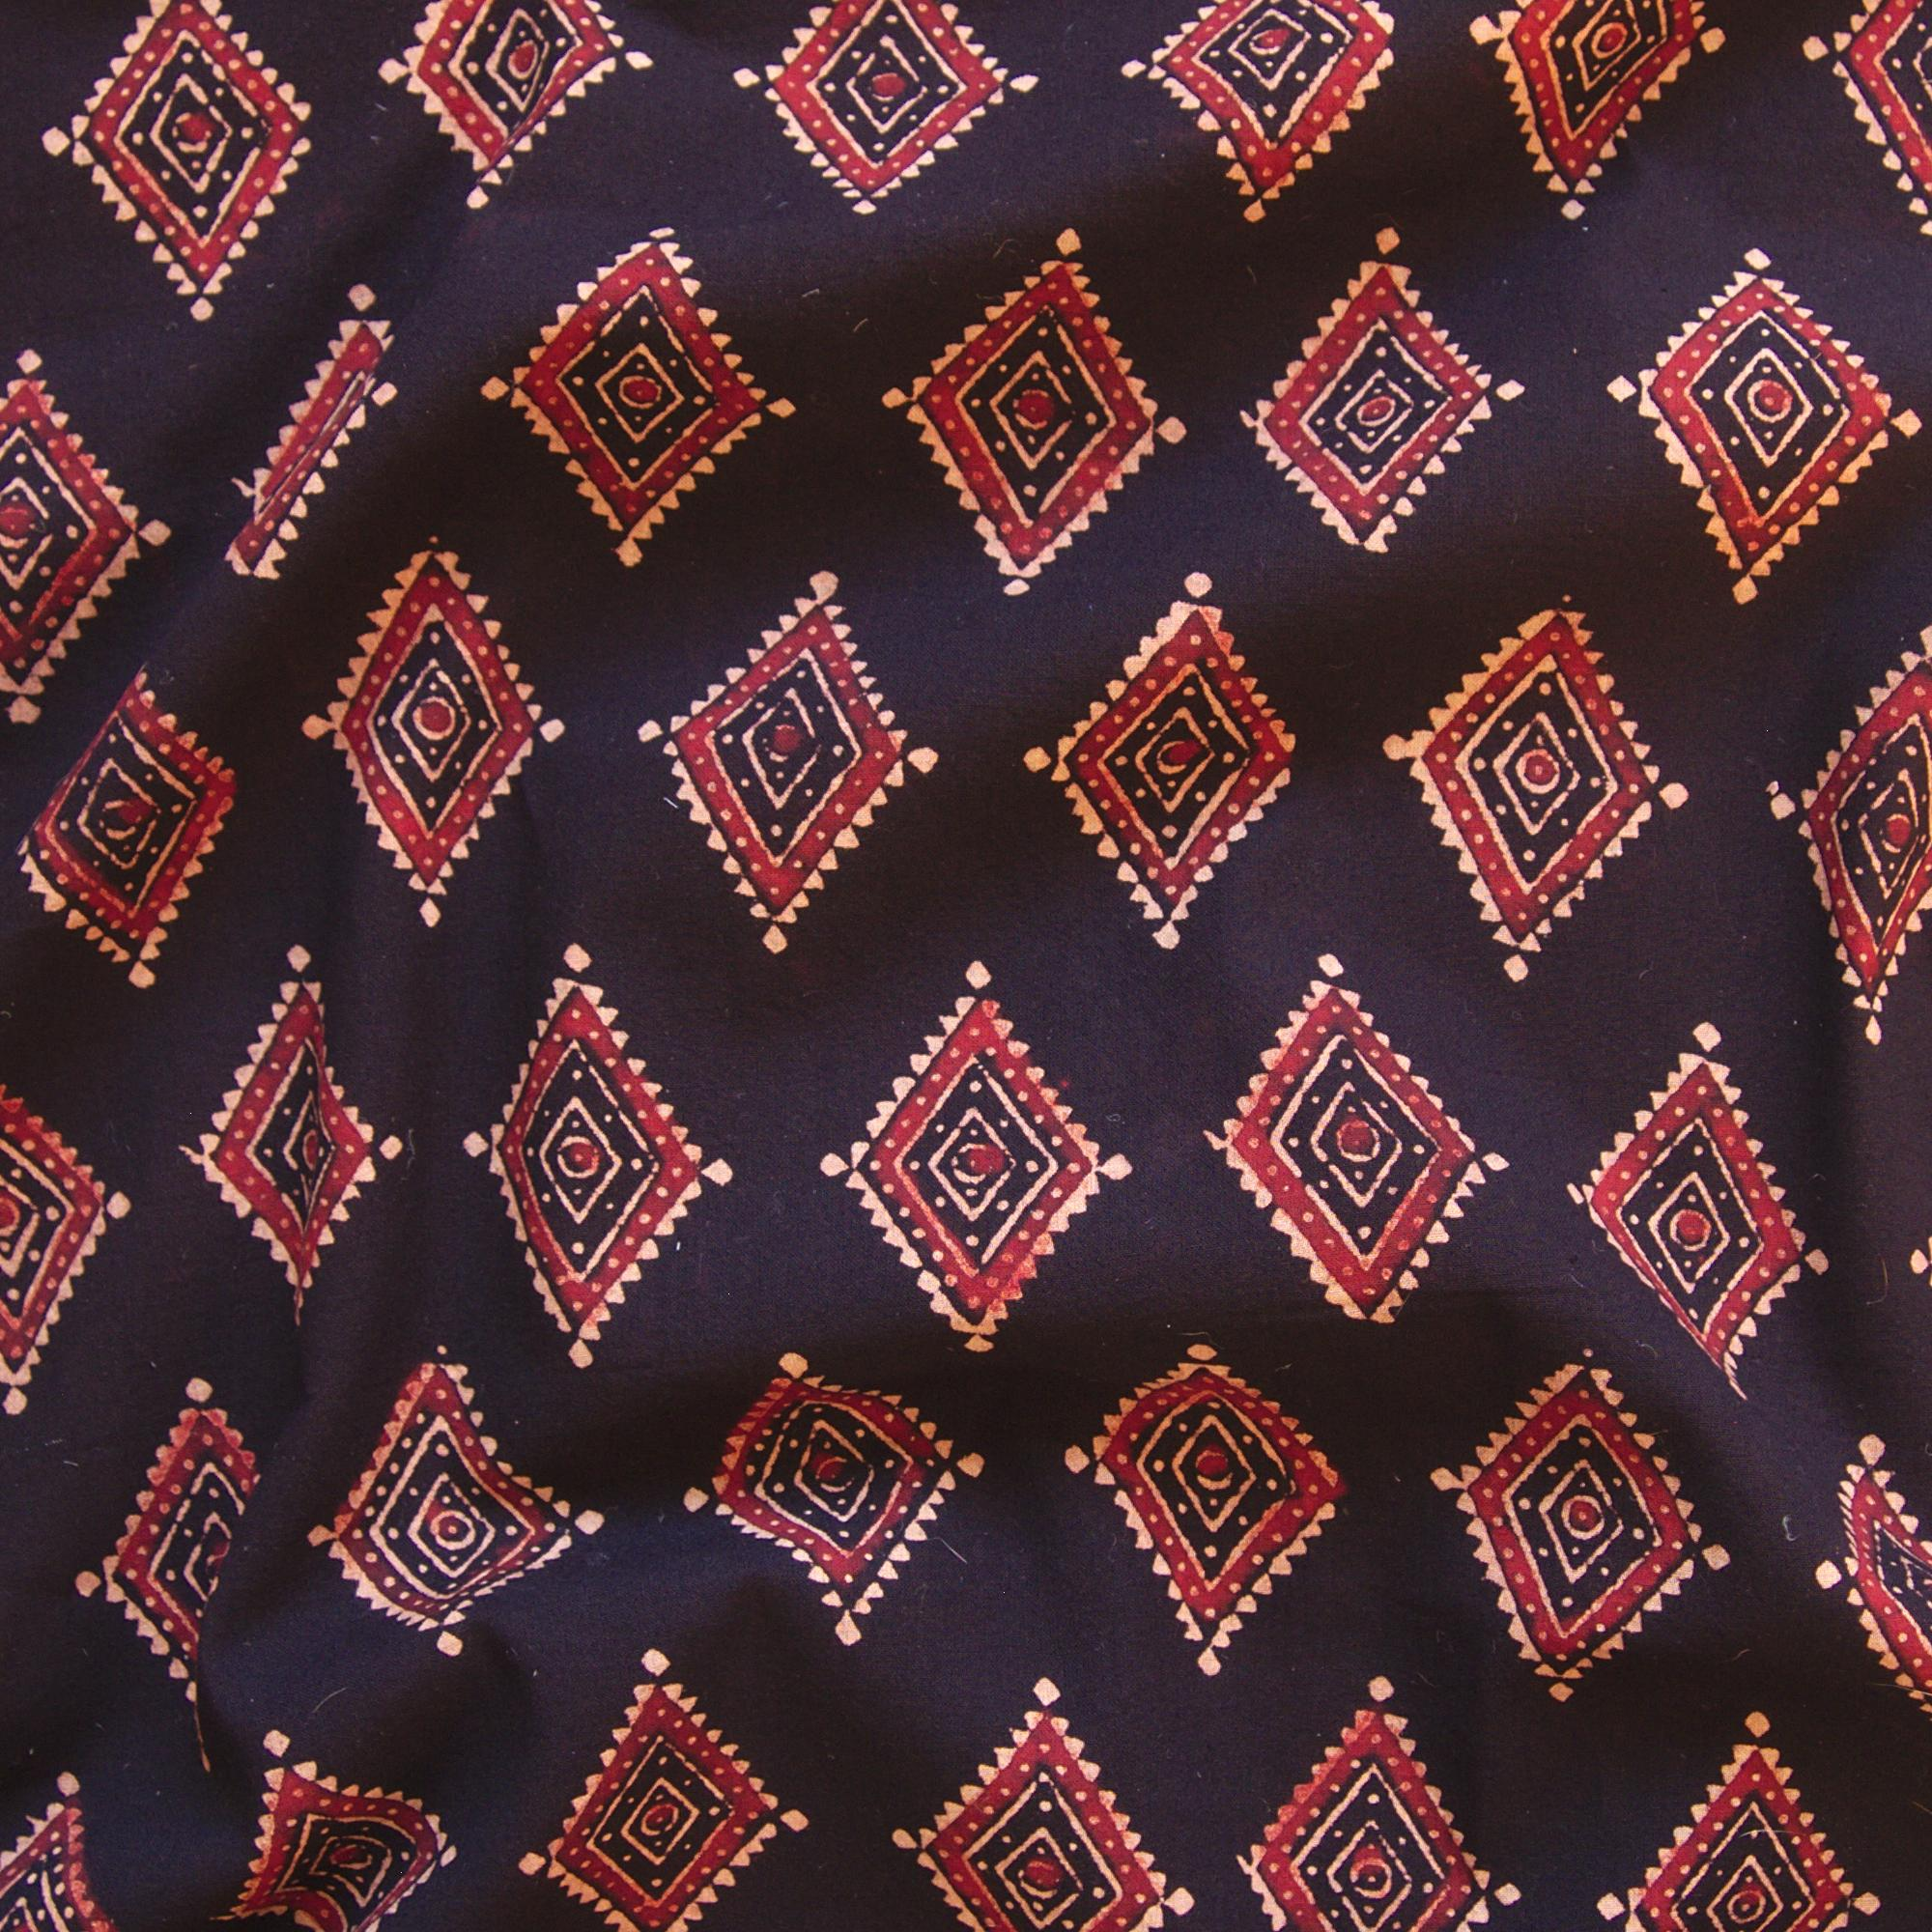 Block Printed Fabric, 100% Cotton, Ajrak Design: Black Base, Red, Beige Diamond. Contrast